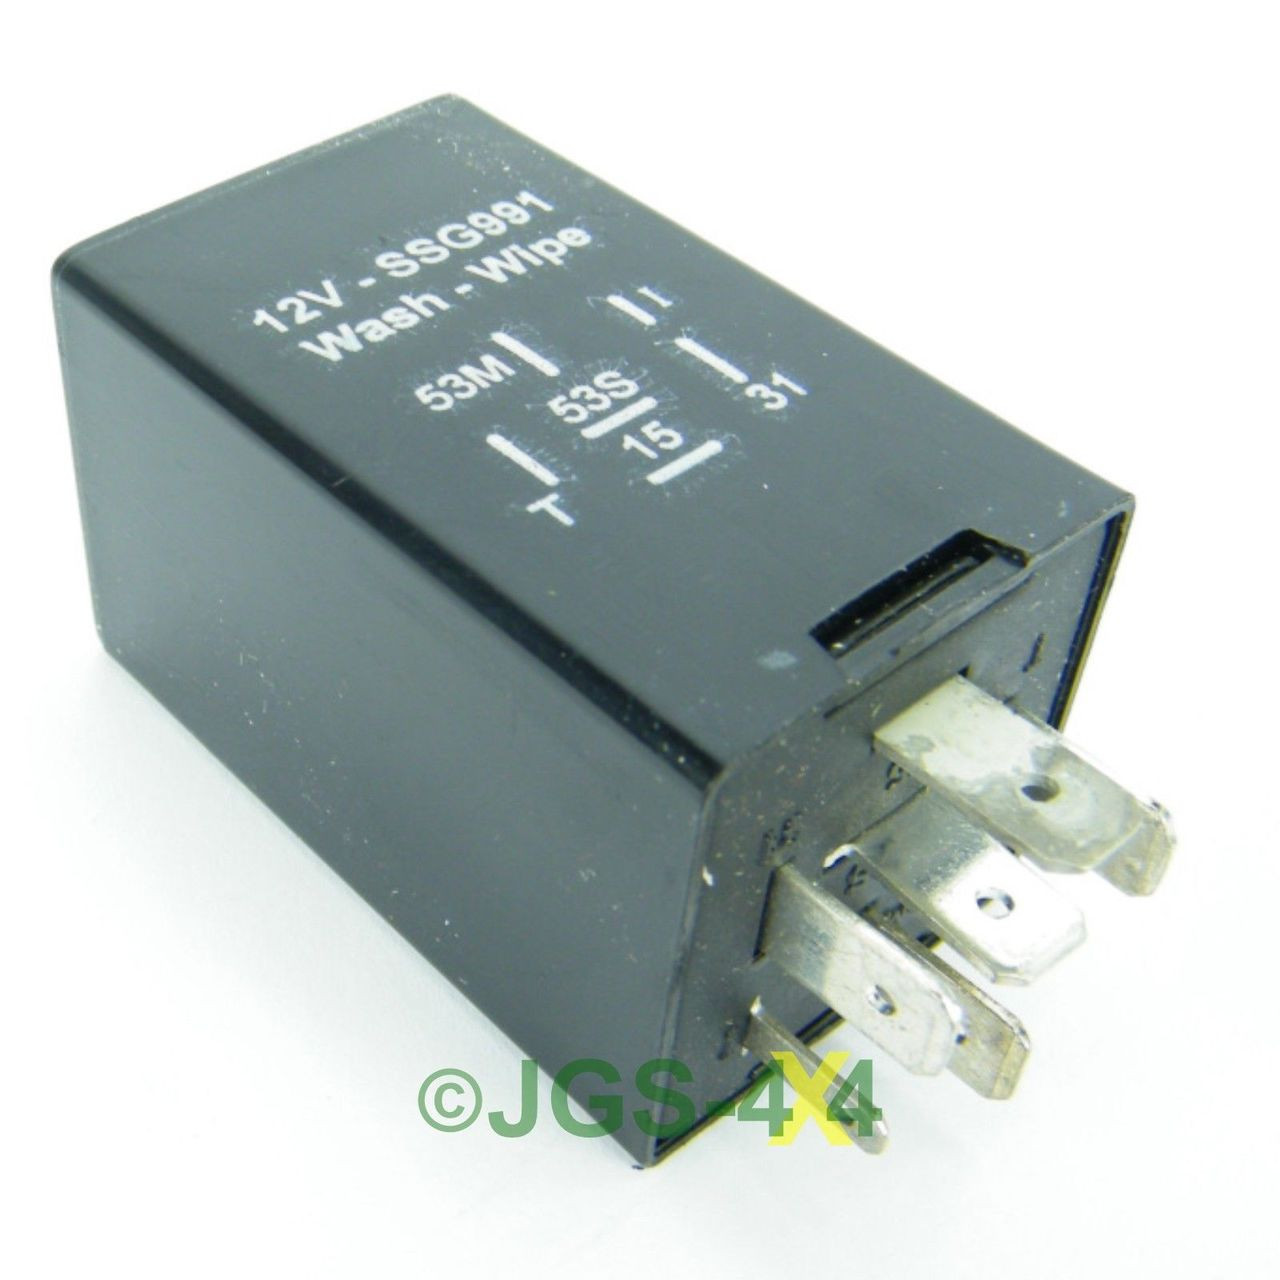 Land Rover Defender Windscreen Wiper Intermittent Delay Relay Heated Windshield Wiring Amr2341